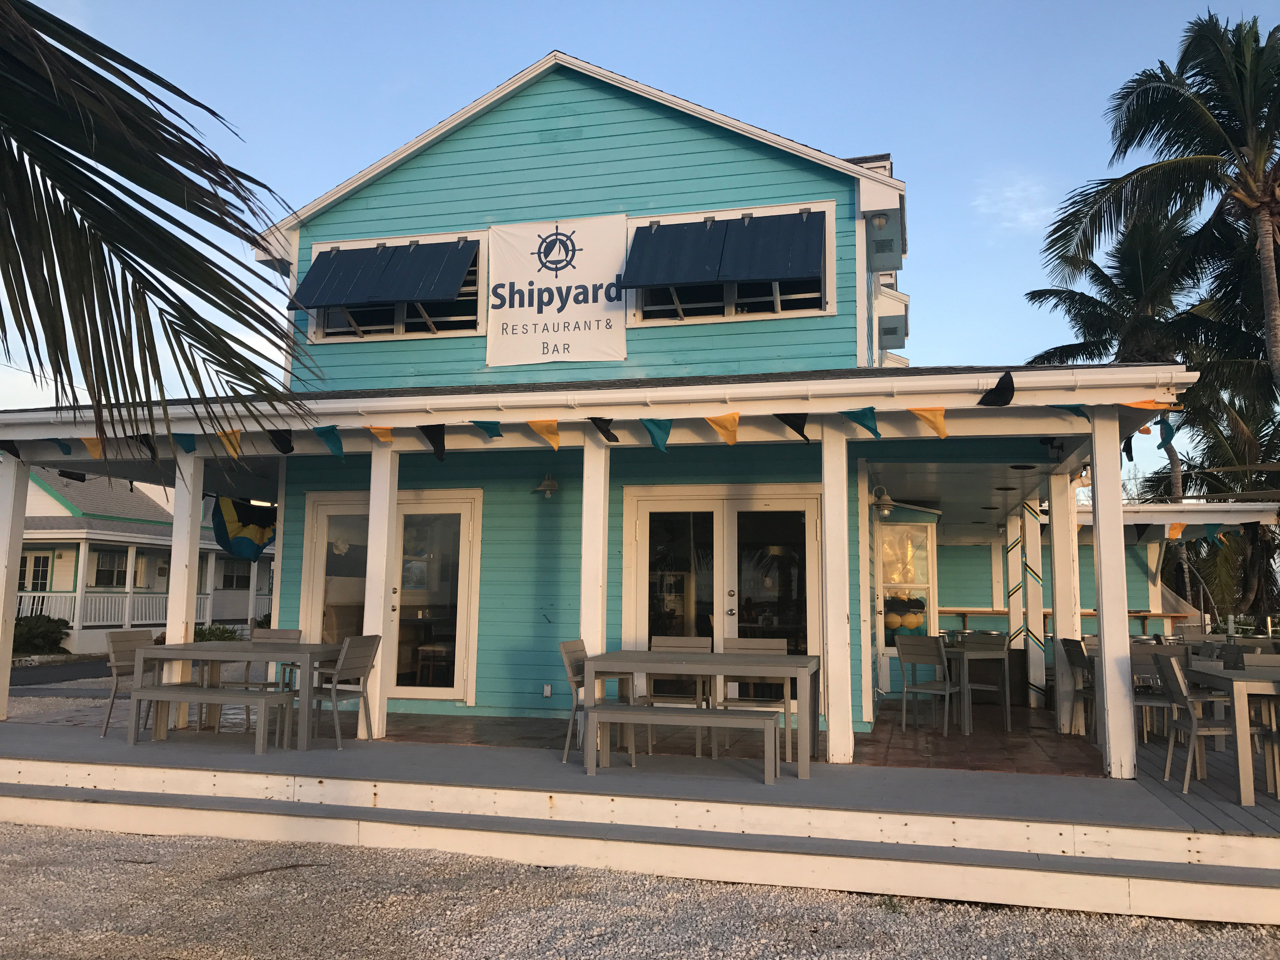 Shipyard Restaurant and Bar